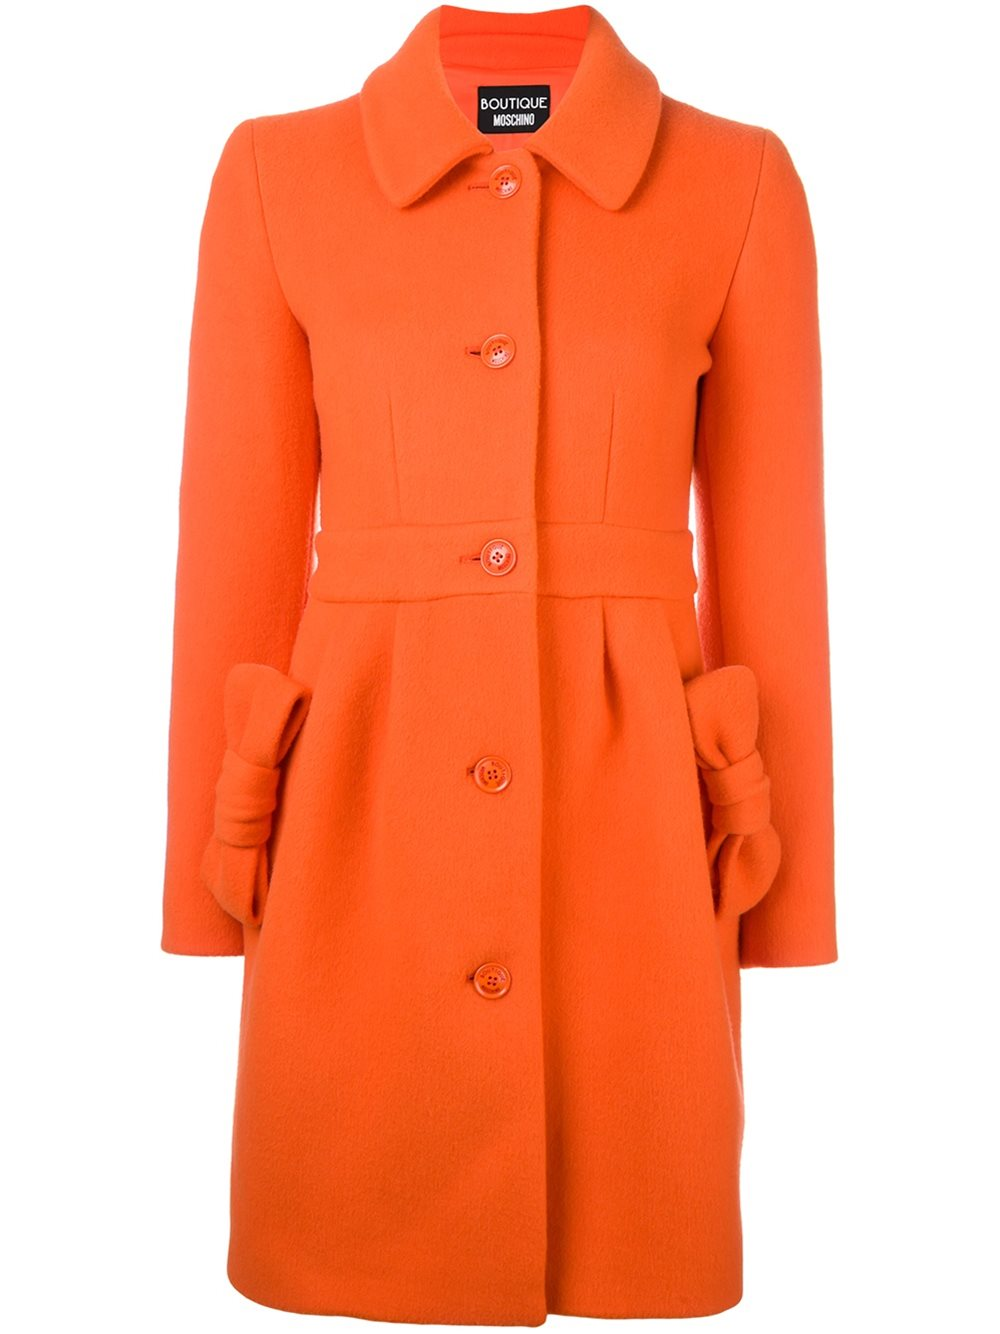 BOUTIQUE MOSCHINO ORAGNGE BOW COAT